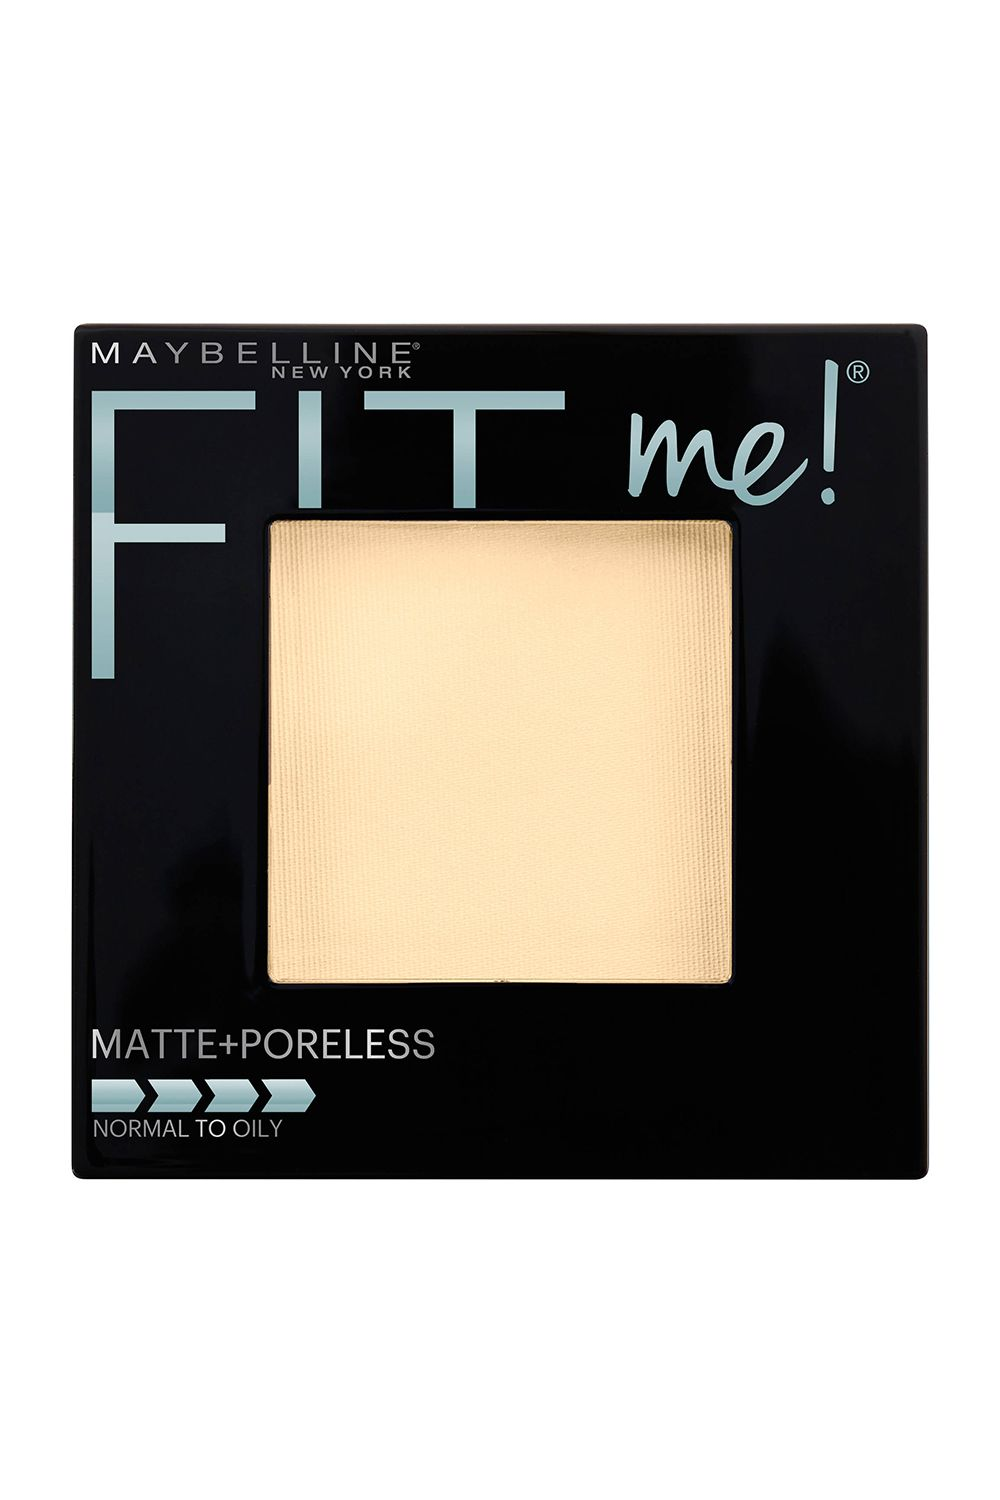 "<p>Swirl this velvet-y powder foundation over your T-zone to zap shiny skin and even out blotchiness, or layer it over your entire face for a diffused, filtered finish.</p><p><i data-redactor-tag=""i"">Maybelline New York Fit Me Matte Plus Poreless Powder, $5.64</i></p><p><strong data-redactor-tag=""strong"">BUY IT: <a href=""https://www.amazon.com/Maybelline-New-York-Poreless-Translucent/dp/B01DPA78WY?th=1"">amazon.com</a>. </strong></p>"